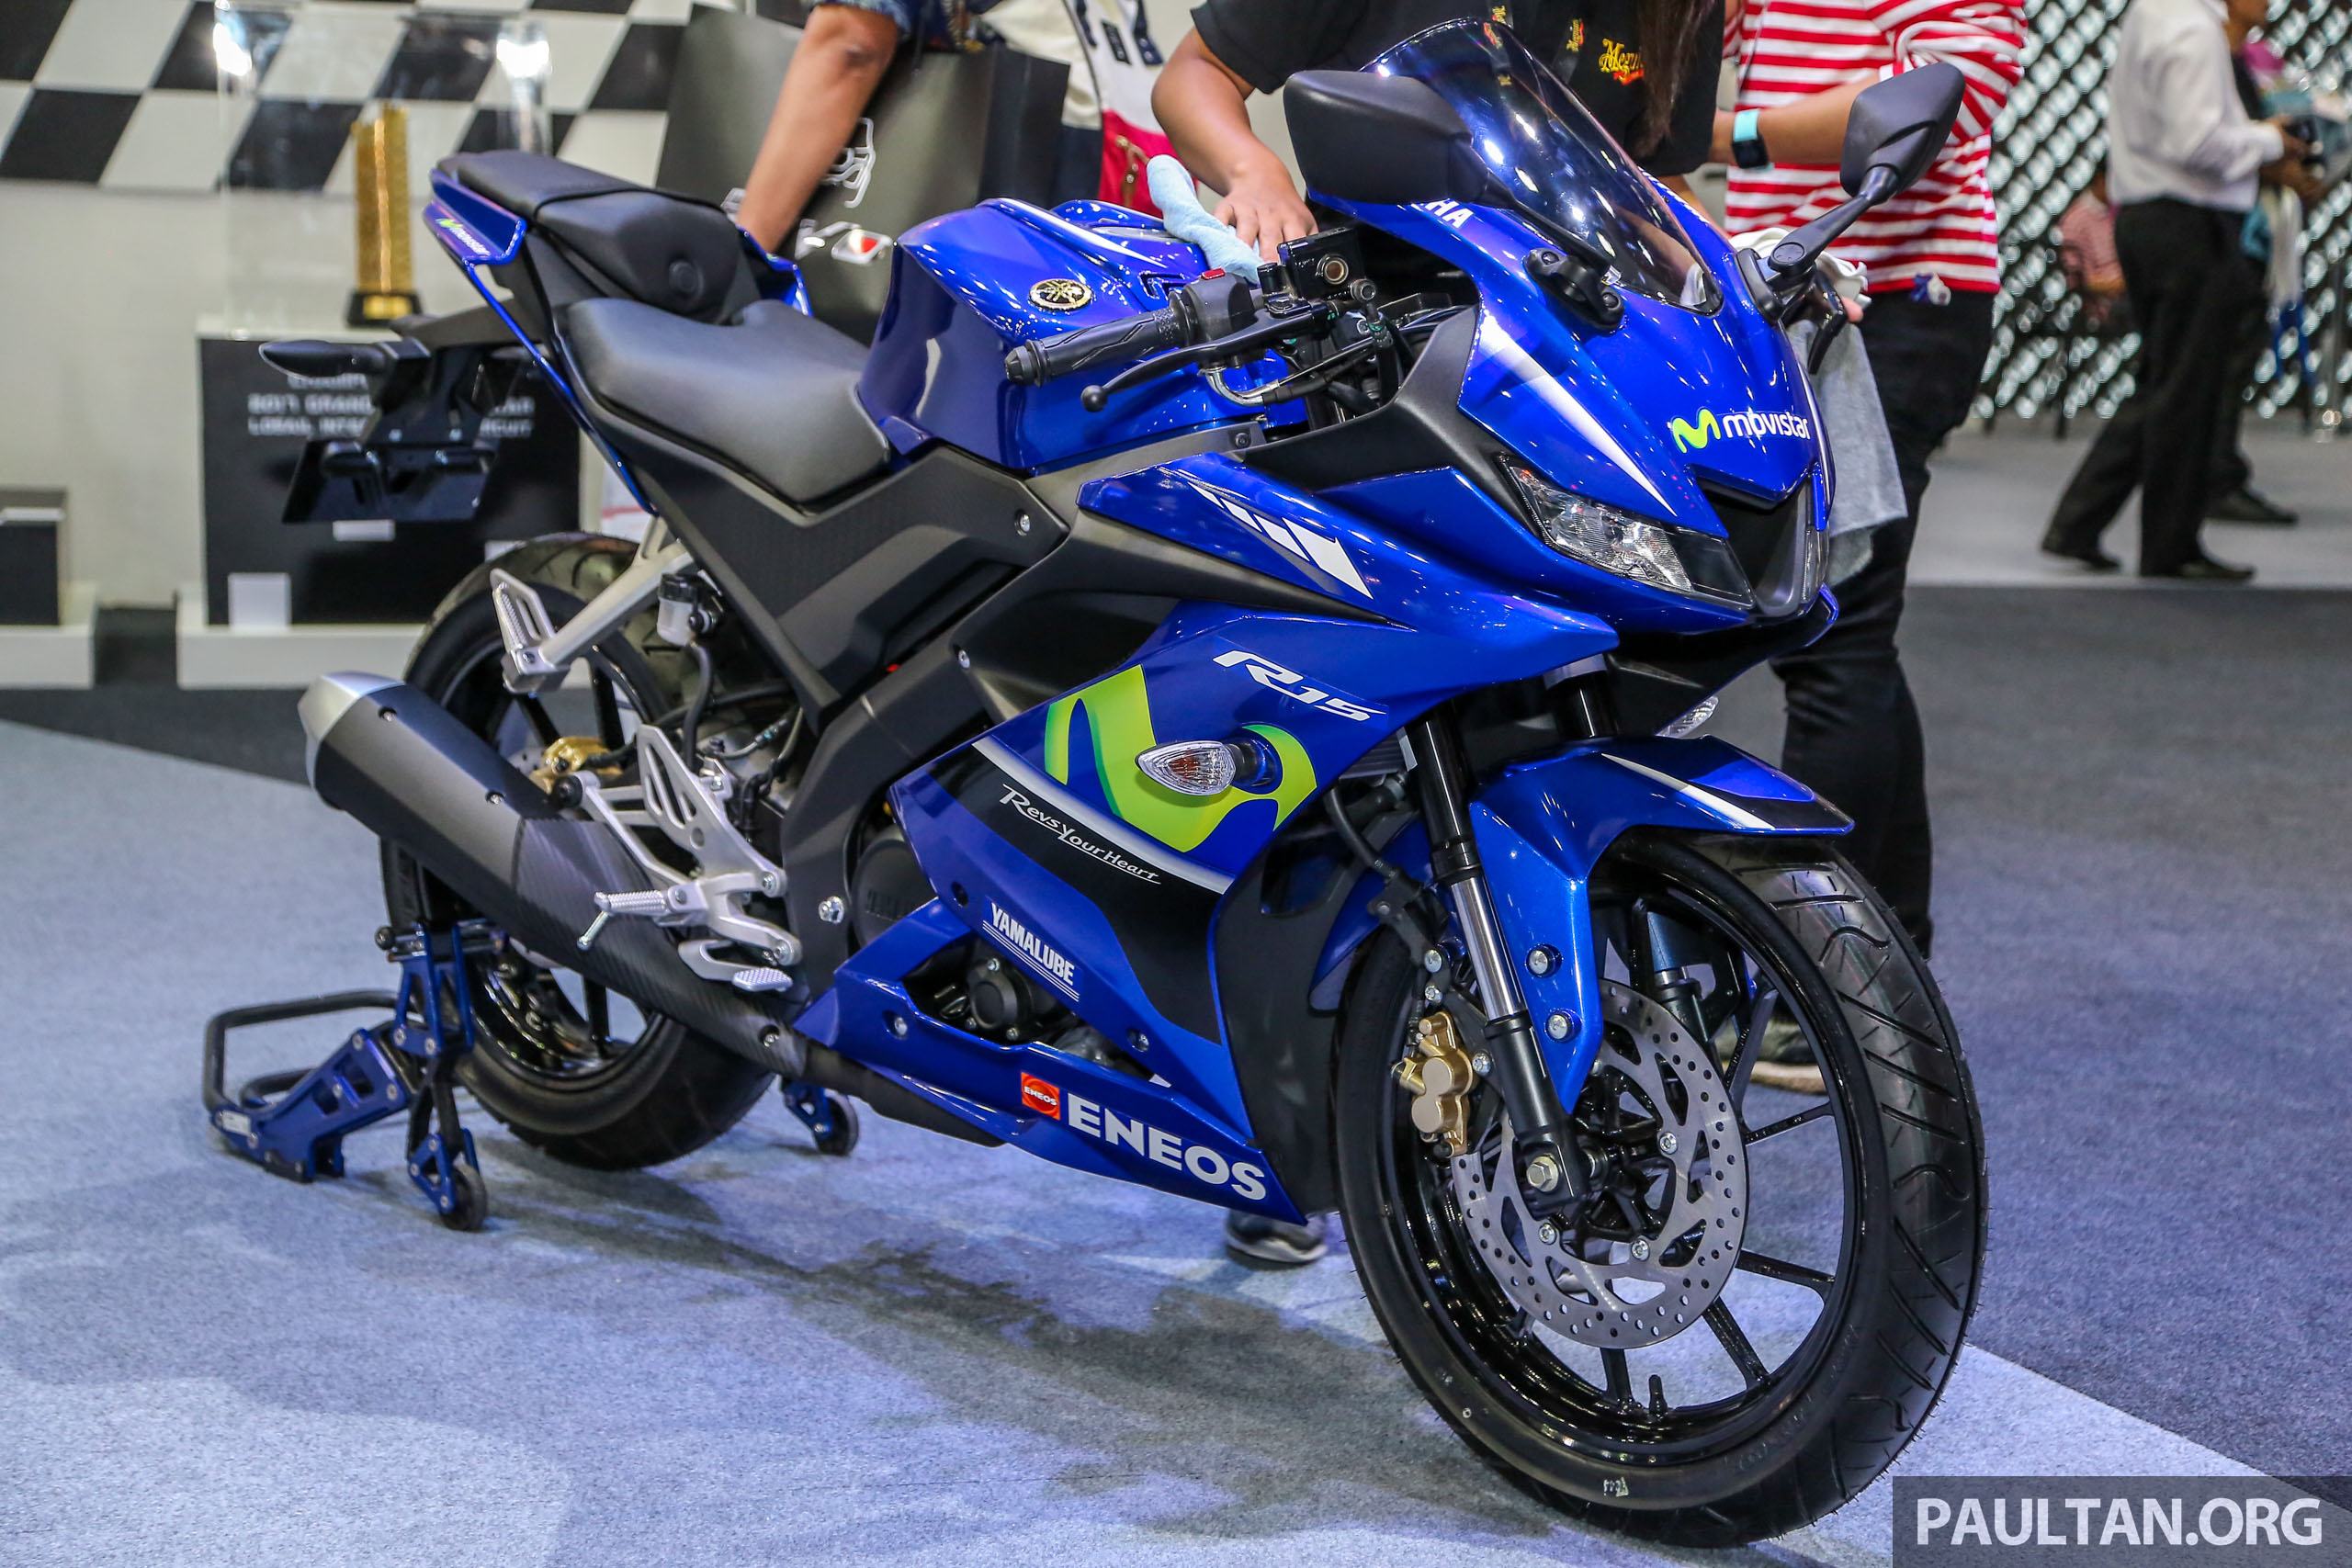 GALLERY: 2018 Yamaha YZF-R3 and R15 sports bikes